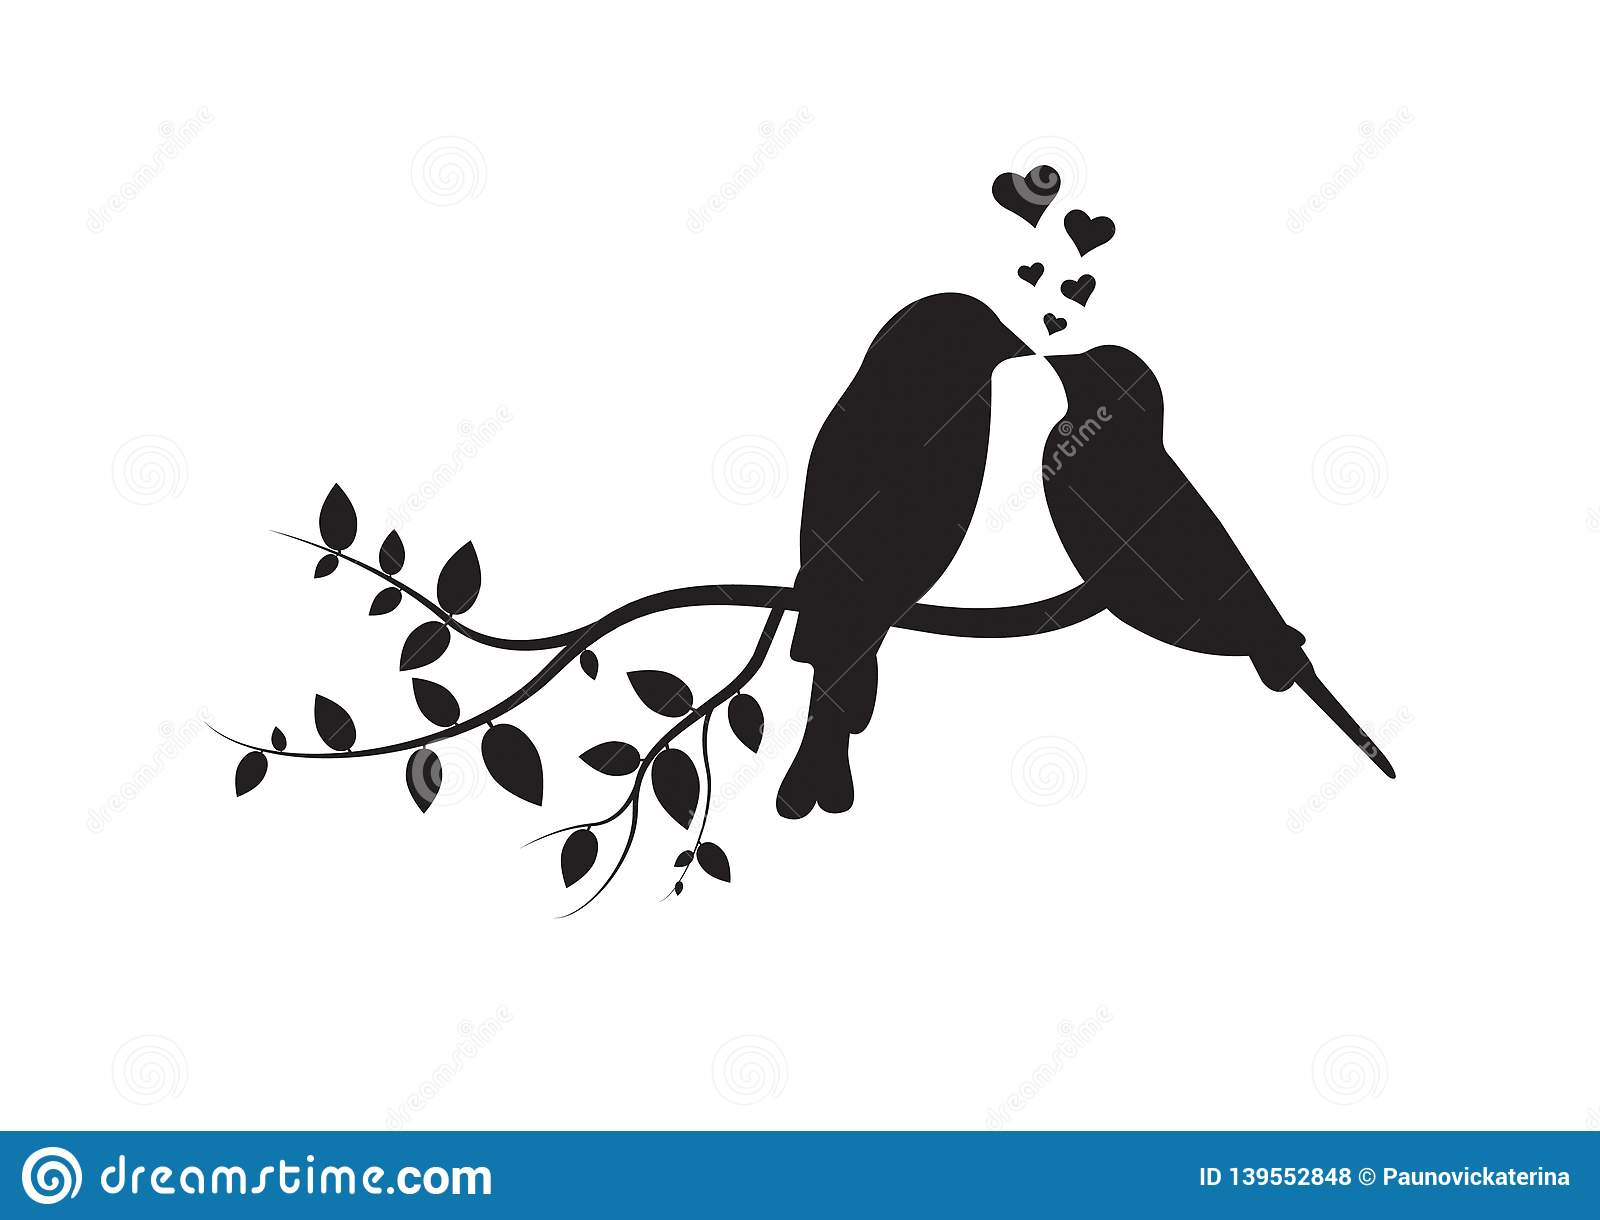 Birds On Branch, Wall Decals, Couple Of Birds In Love, Birds Intended For Most Up To Date Birds On A Branch Wall Decor (View 16 of 20)